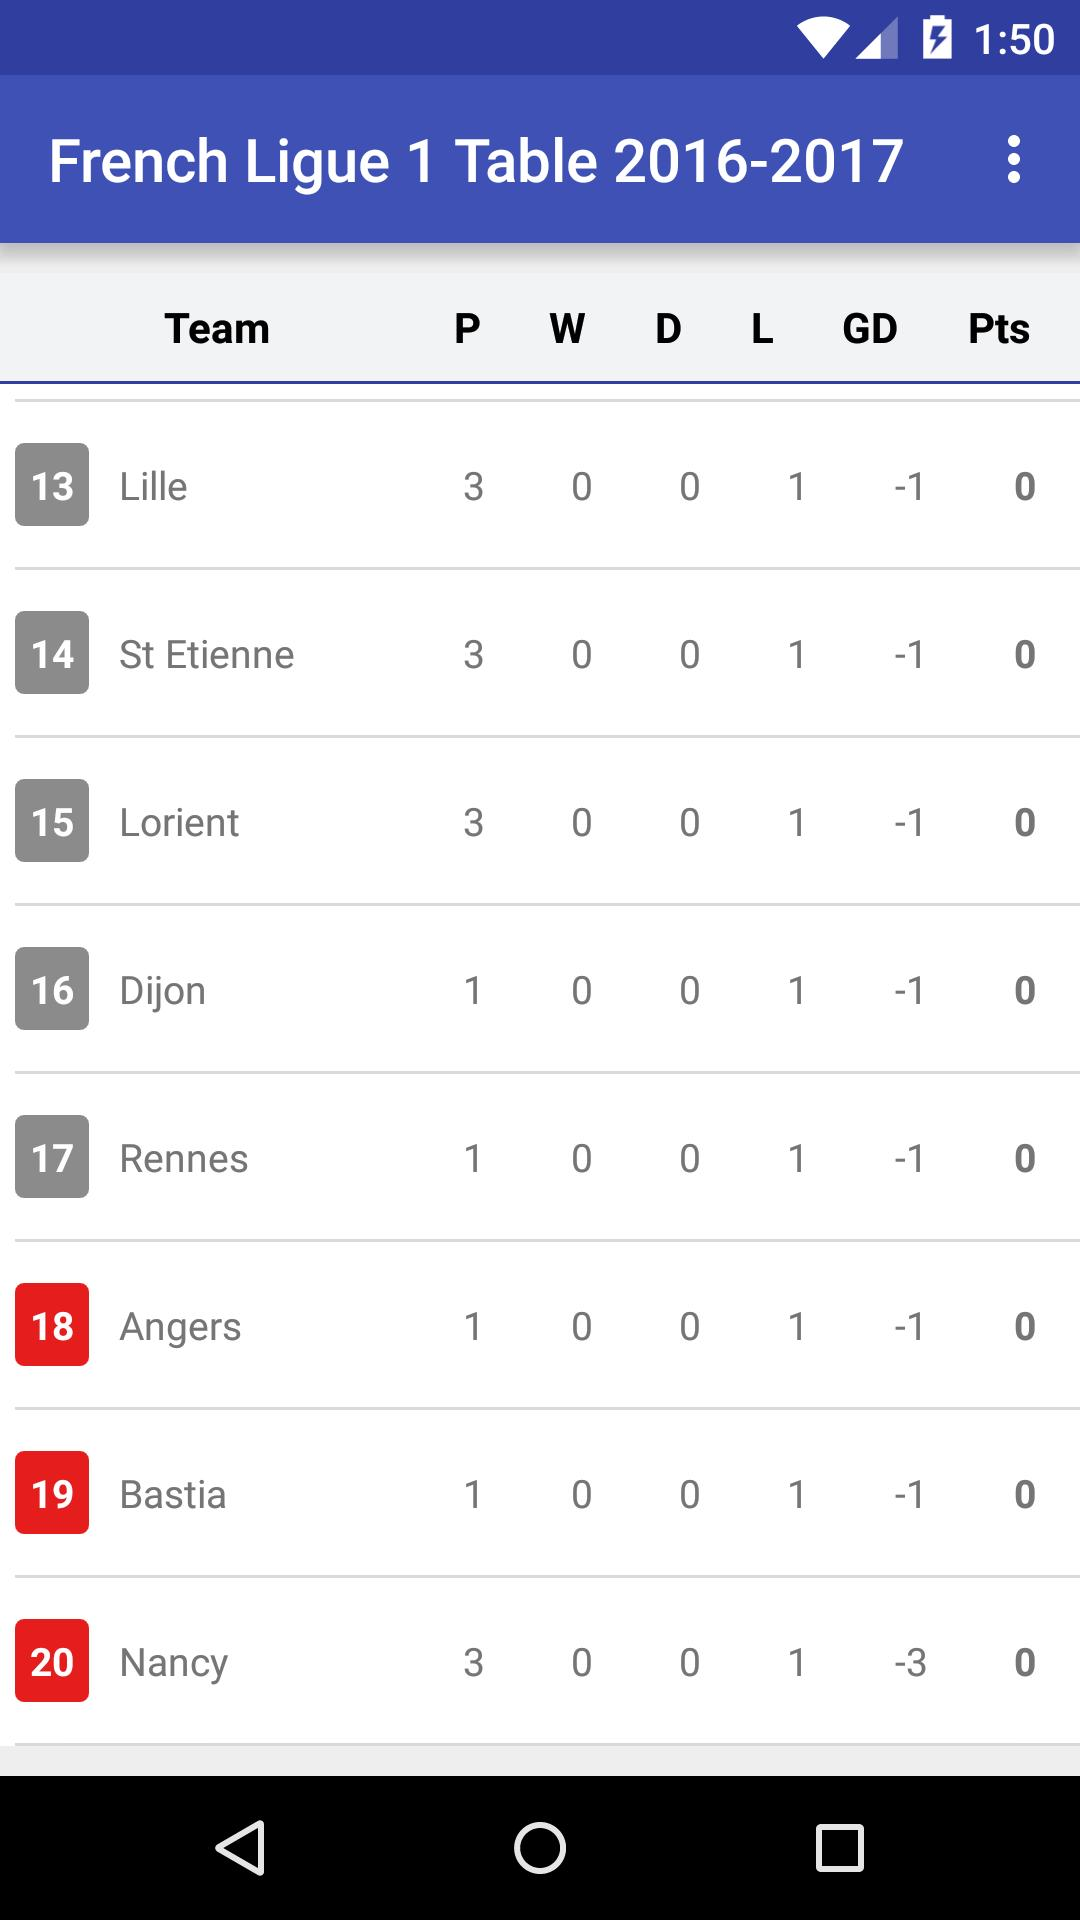 French Ligue 1 Table 2016-2017 for Android - APK Download